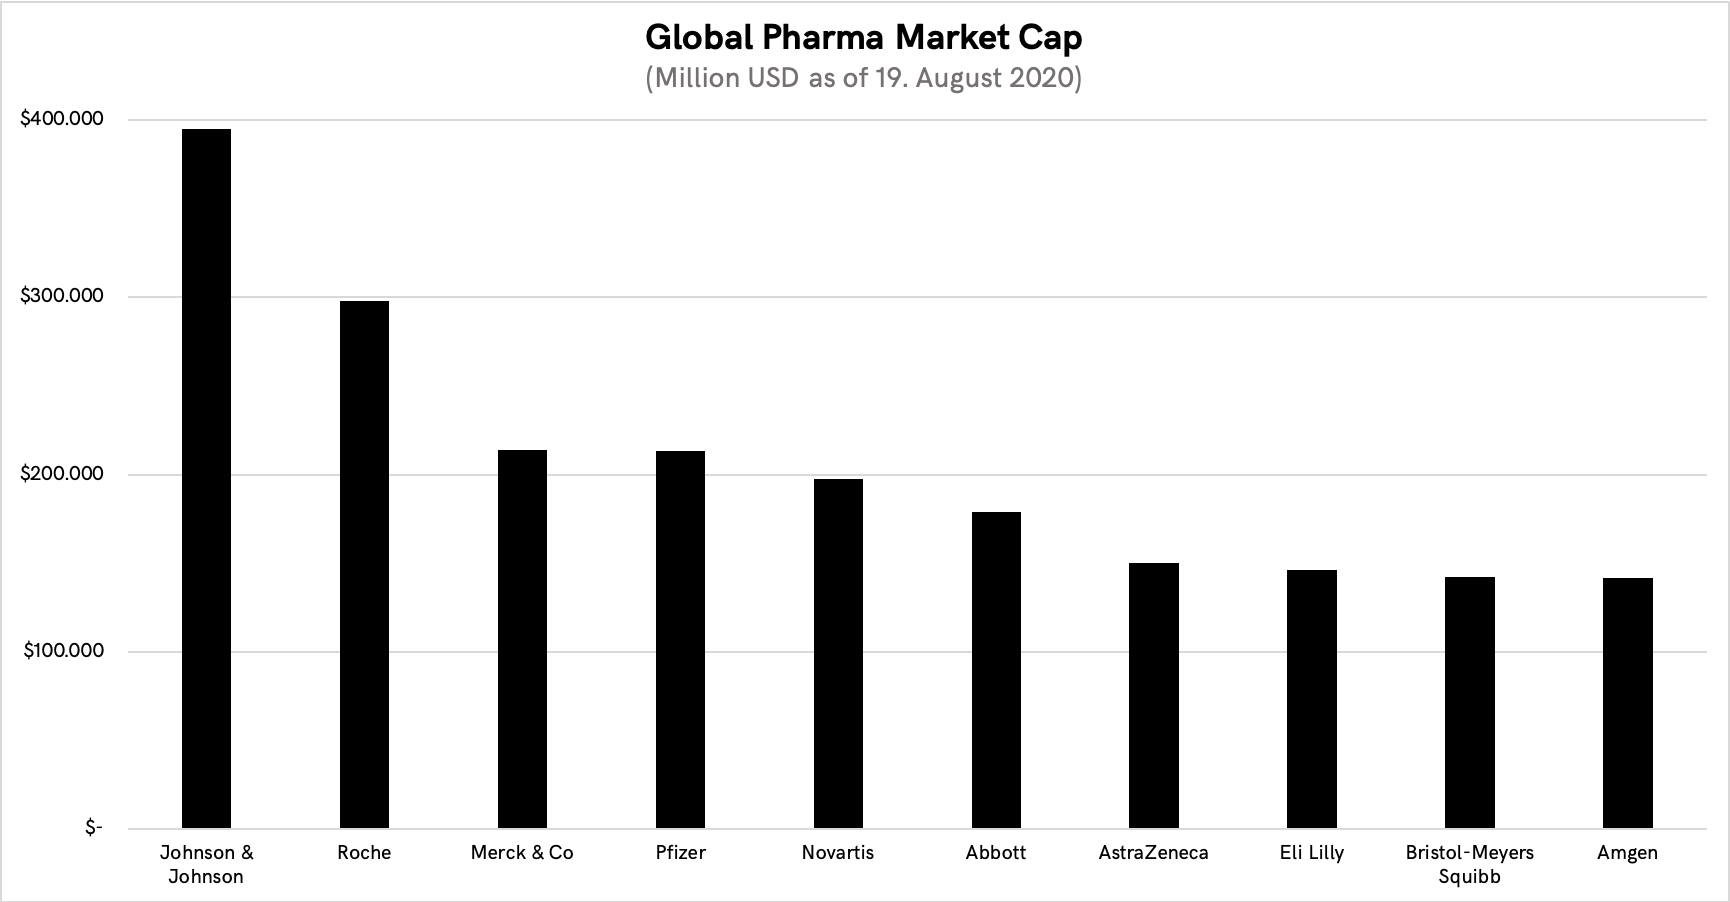 Comparison of market capitalization of public companies in the pharmaceuticals space